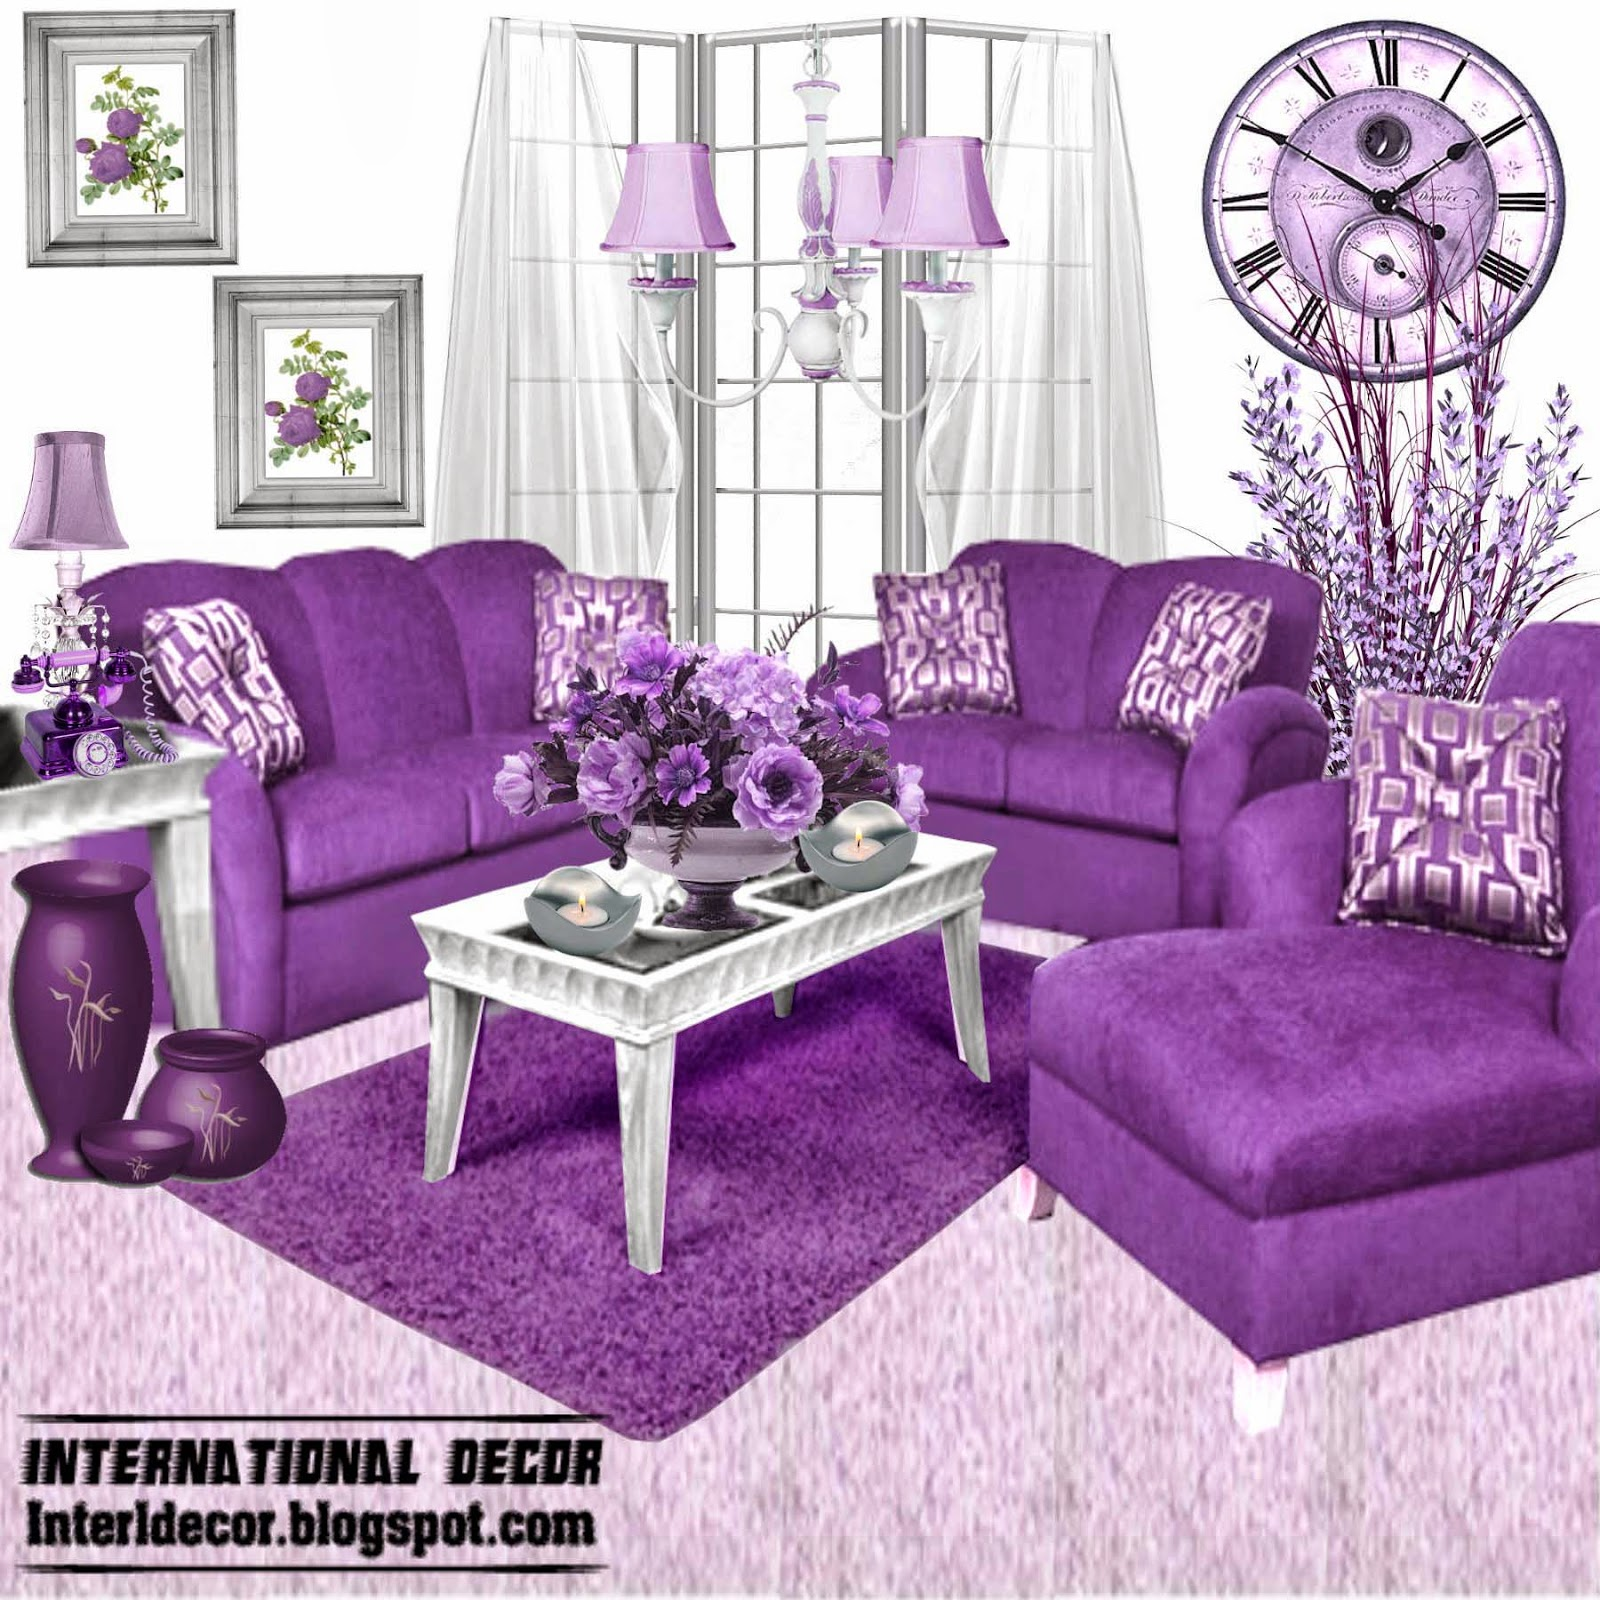 Luxury purple furniture sets sofas chairs for living room interior designs - Room furniture design ...